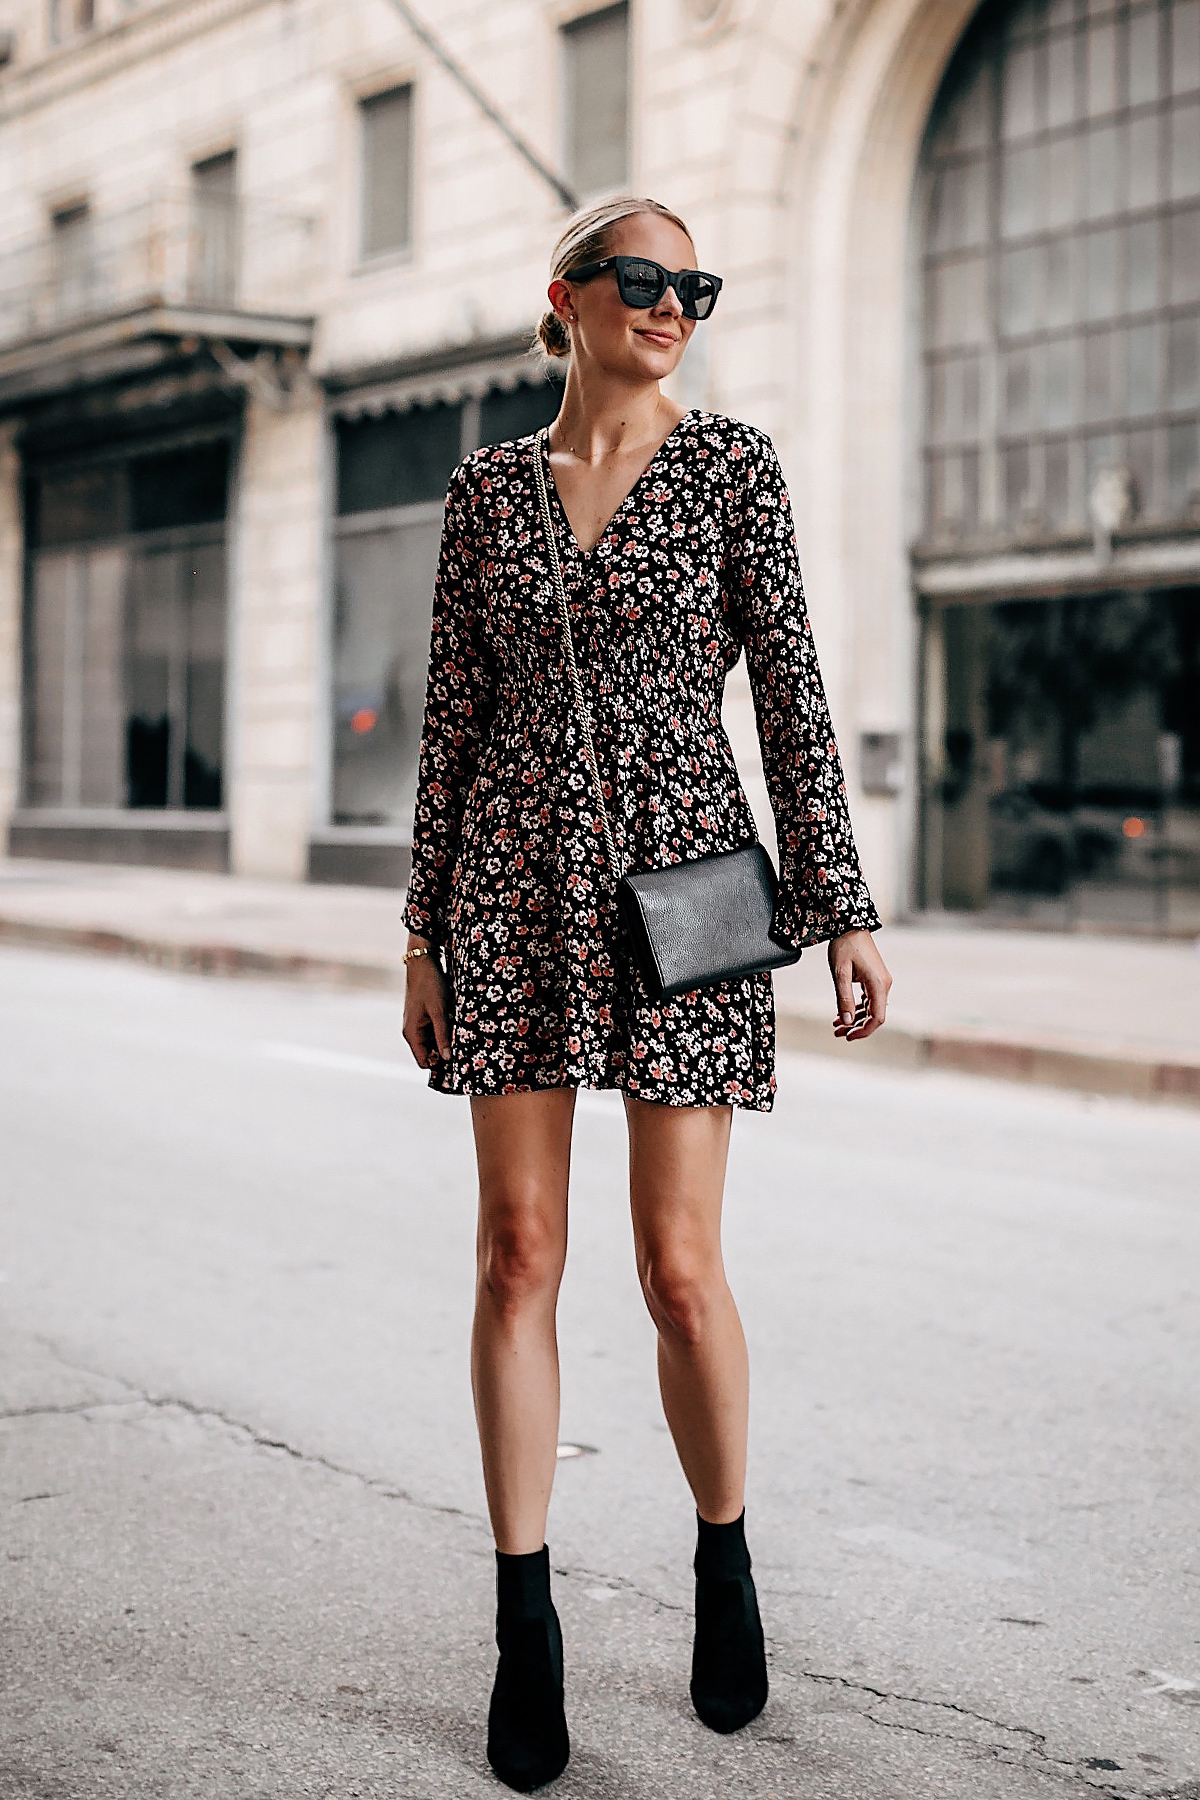 Blonde Woman Wearing Black Floral Long Sleeve Mini Dress Black Heeled Ankle Booties Gold Chain Black Crossbody Handbag Black Sunglasses Fashion Jackson San Diego Fashion Blogger Street Style